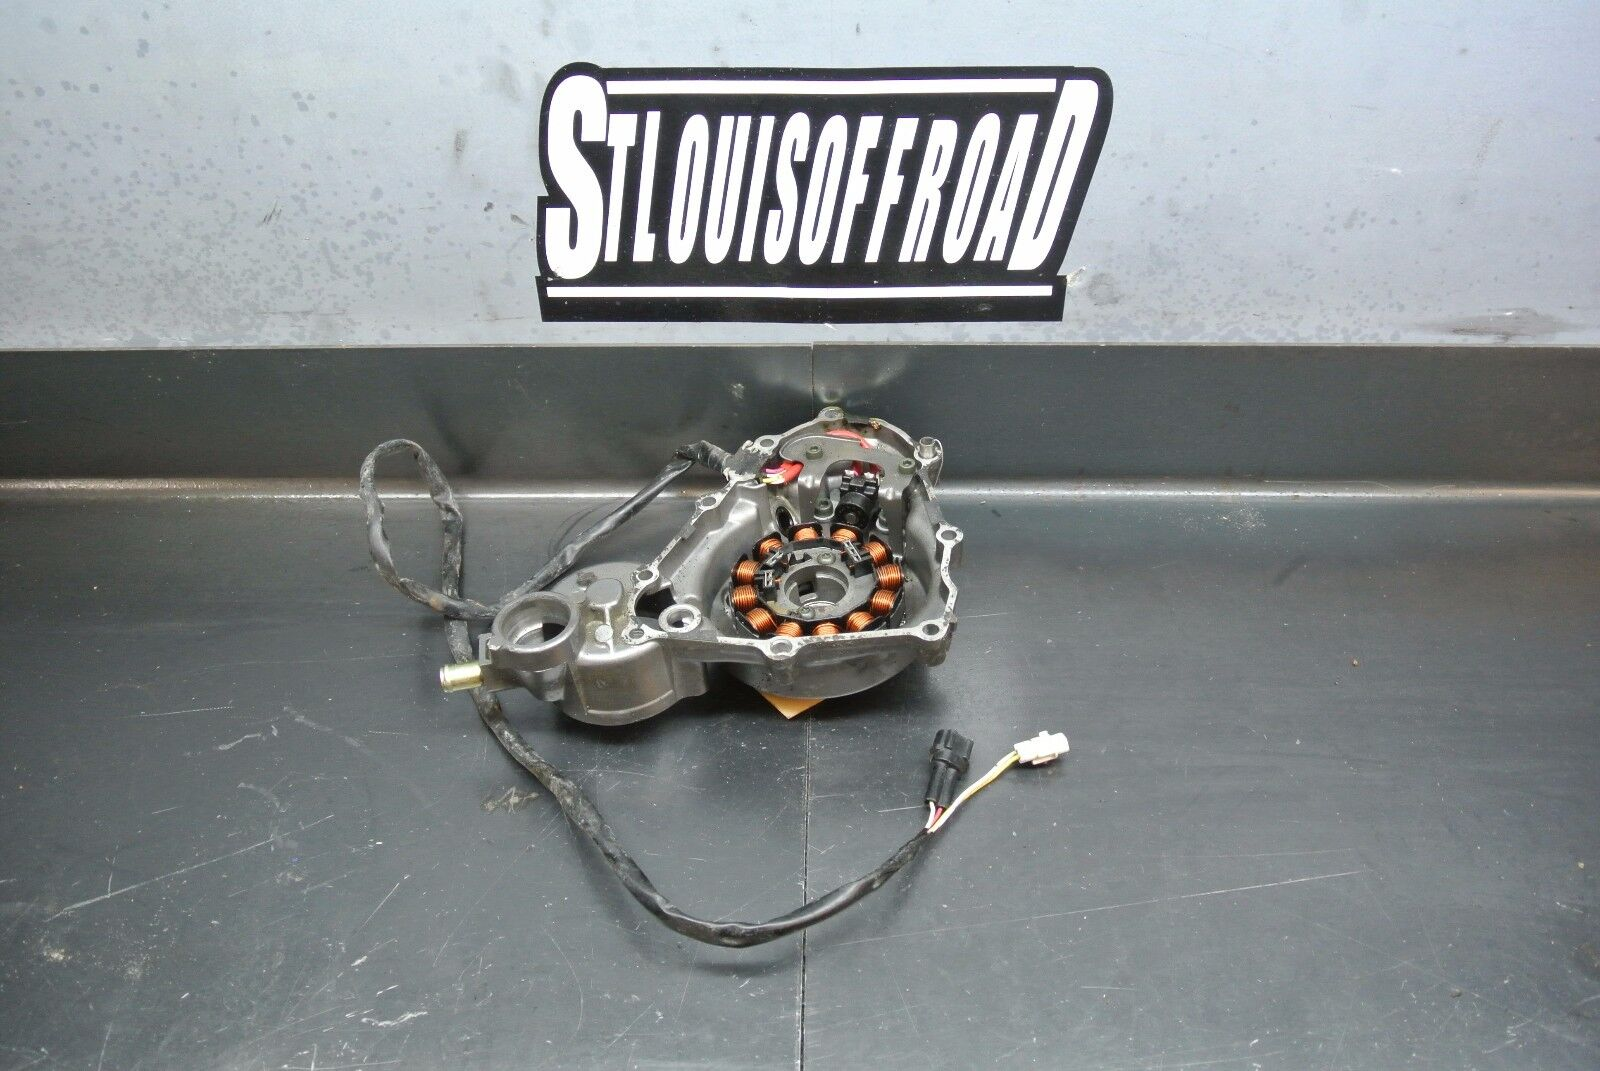 A 2008 08 Yamaha YFZ450 YFZ 450 Stator and Stator Cover